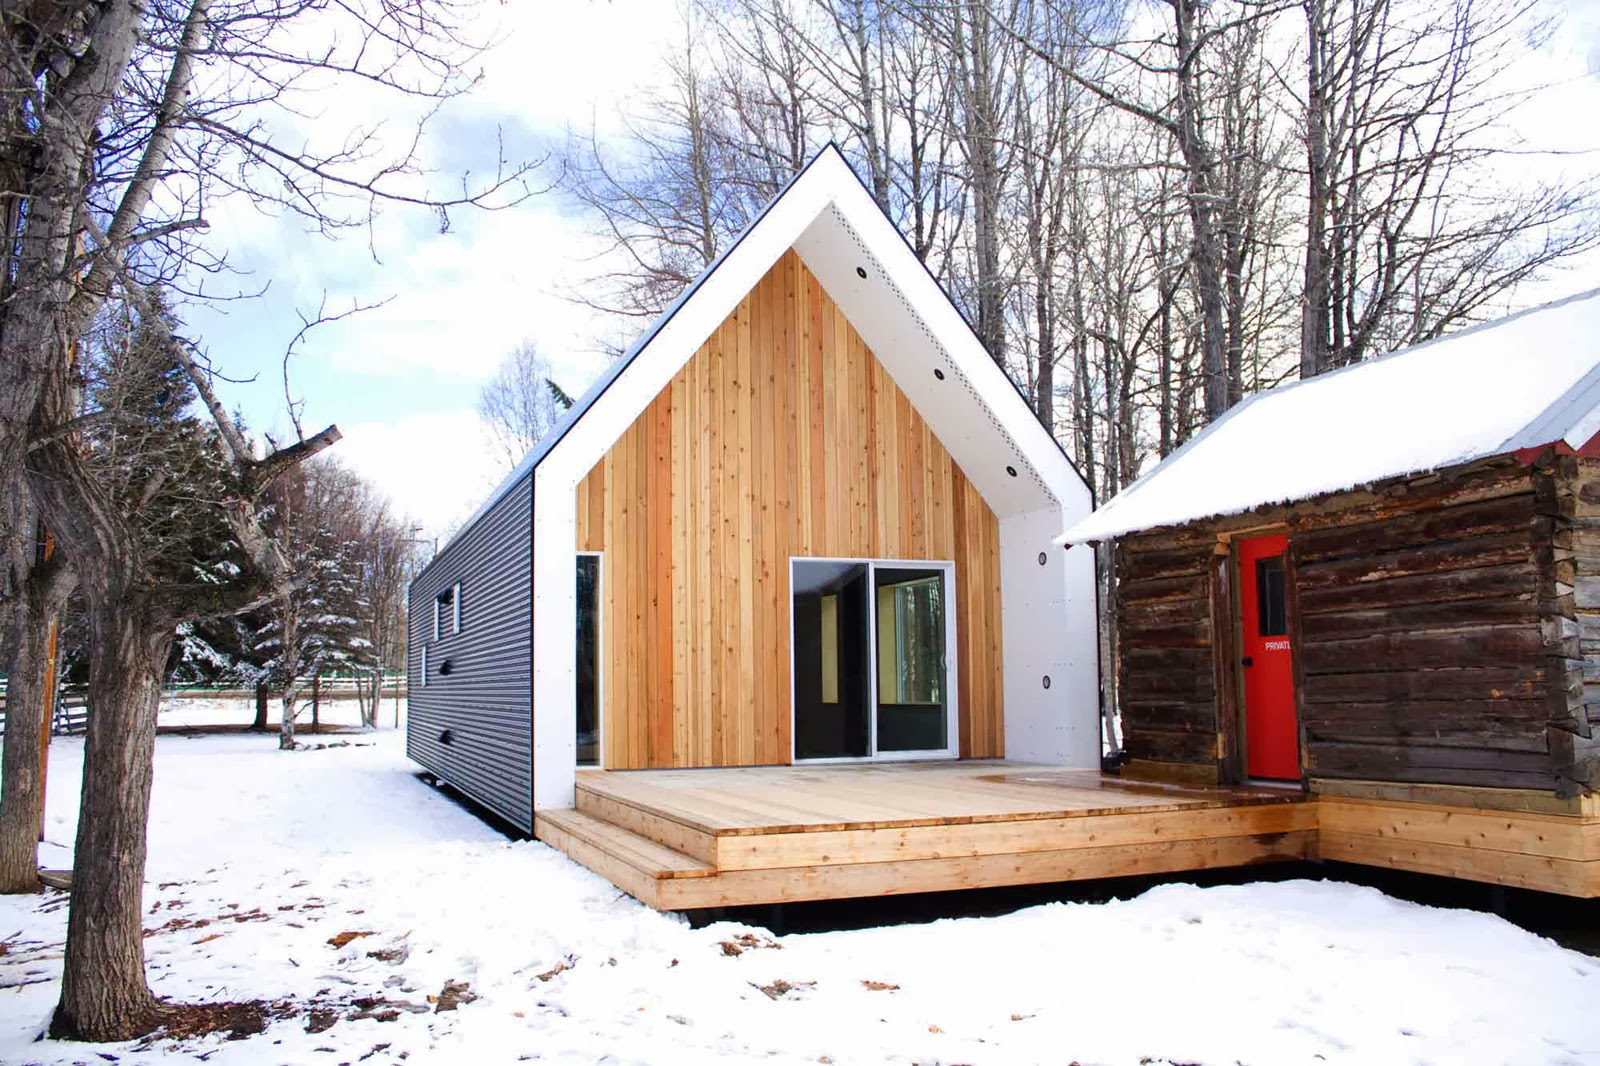 Coolest cabins warburg house canada for Small house design canada